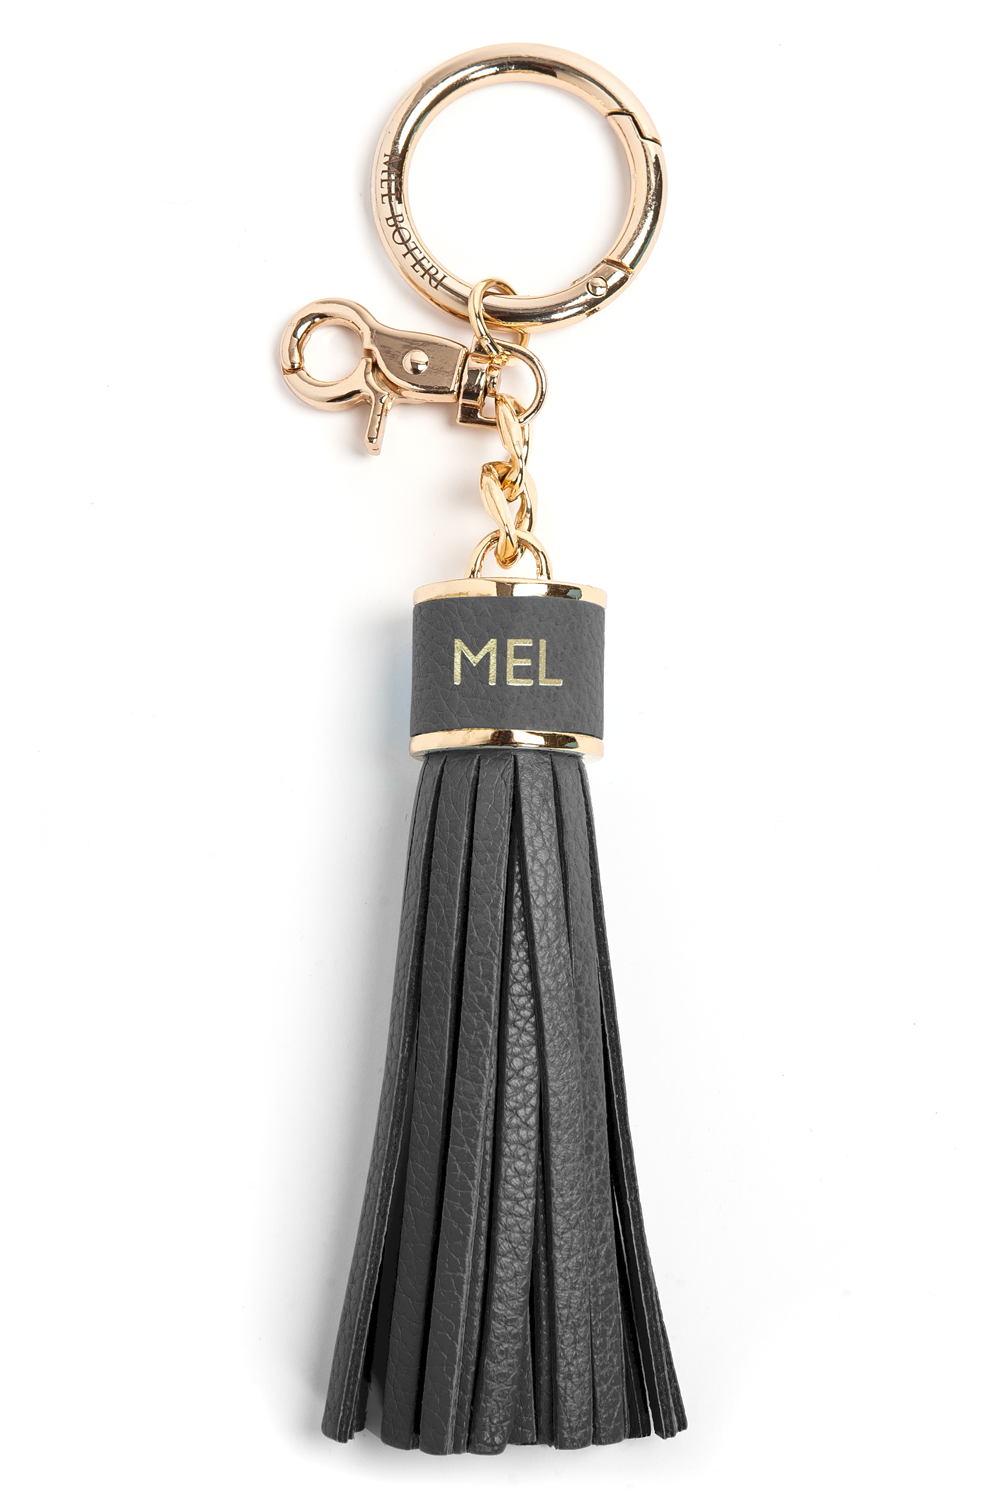 The Mel Boteri Pebbled-Leather Tassel Charm | Stone Leather With Gold Hardware | Mel Boteri Gift Ideas